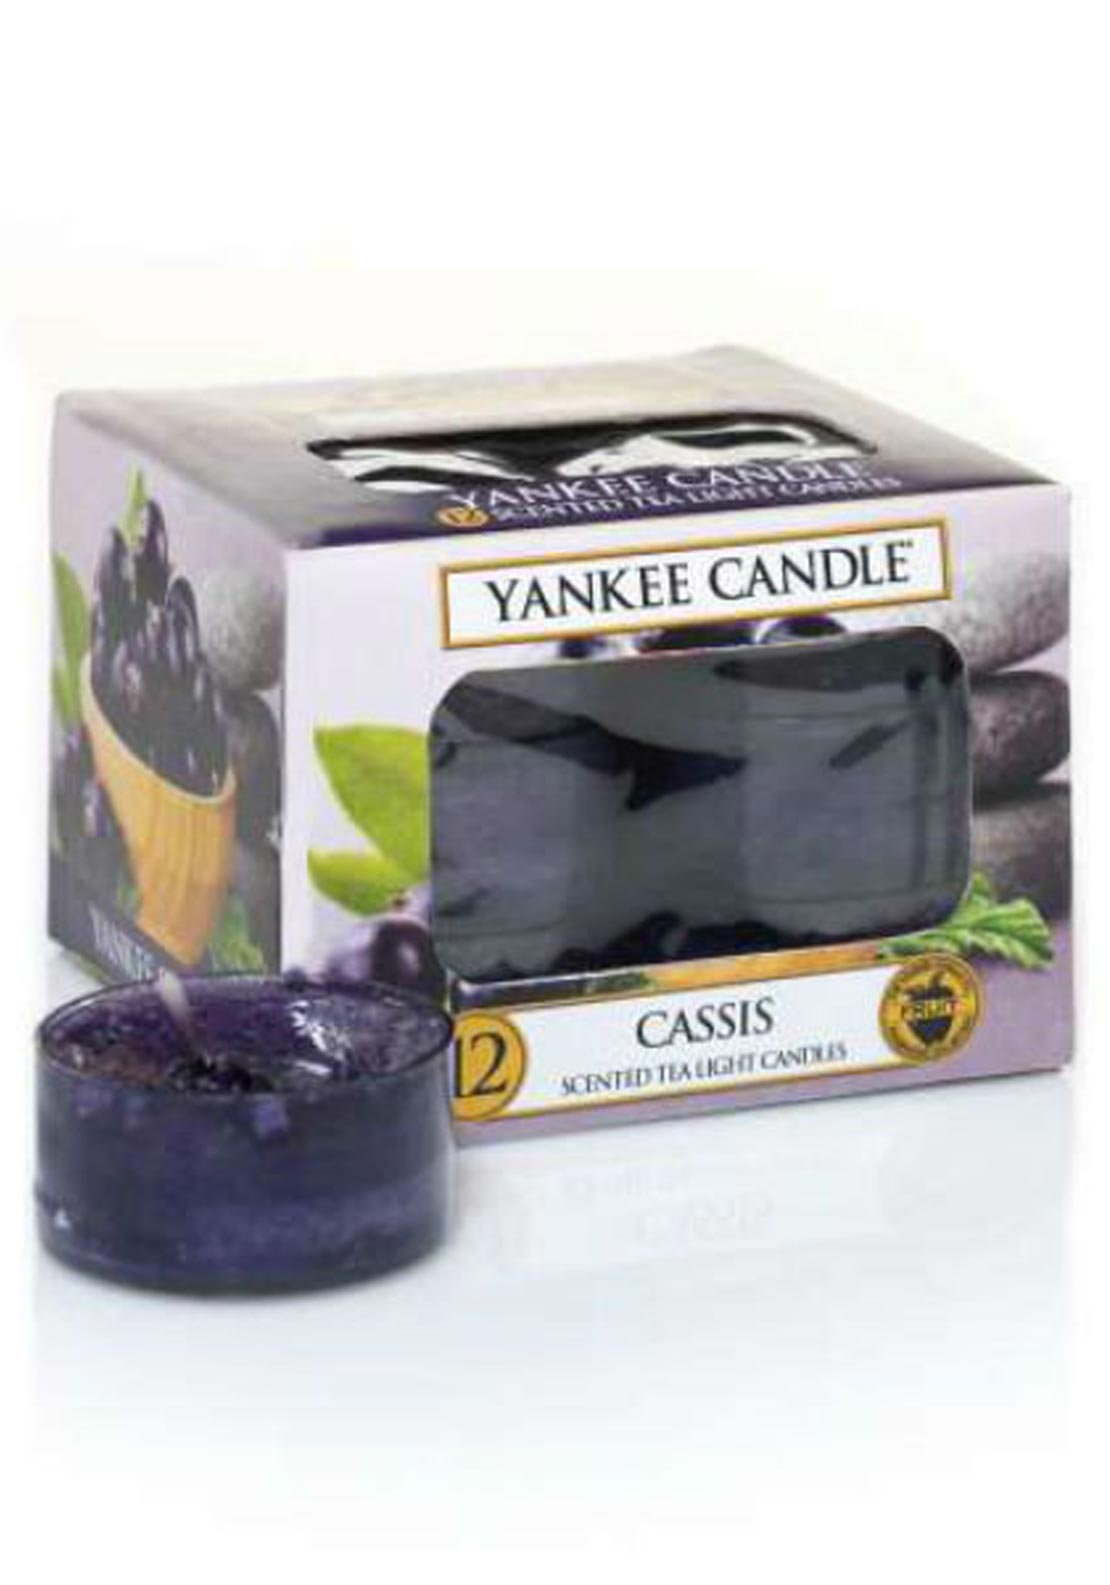 Yankee Candle 12 Scented Tea Light Candles, Cassis